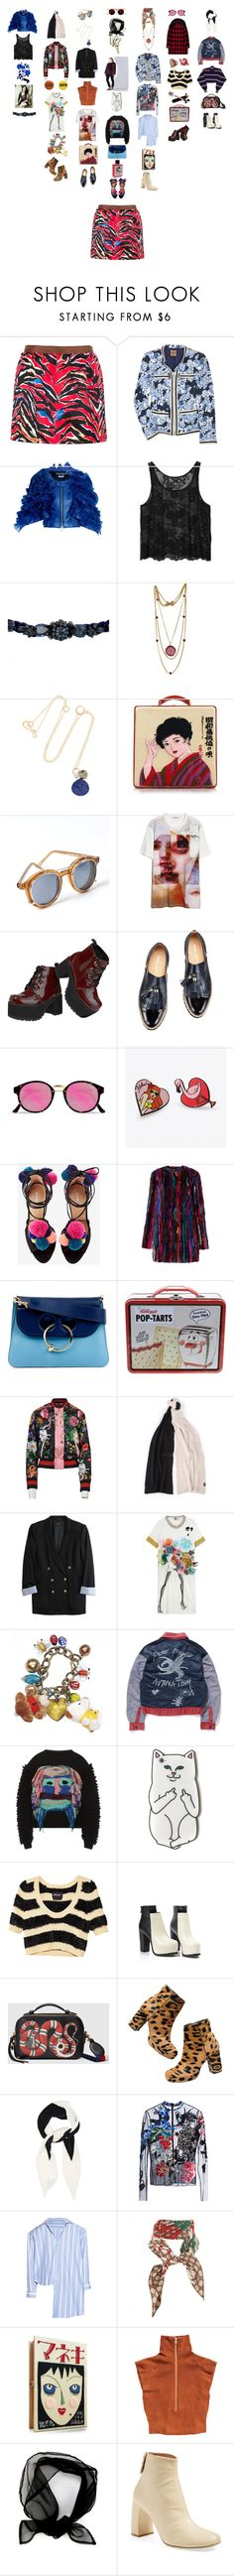 """Untitled #2171"" by duumbblond ❤ liked on Polyvore featuring Balenciaga, Tory Burch, Junya Watanabe, Monki, Shourouk, Melissa Joy Manning, Olympia Le-Tan, Spitfire, Givenchy and T.U.K."